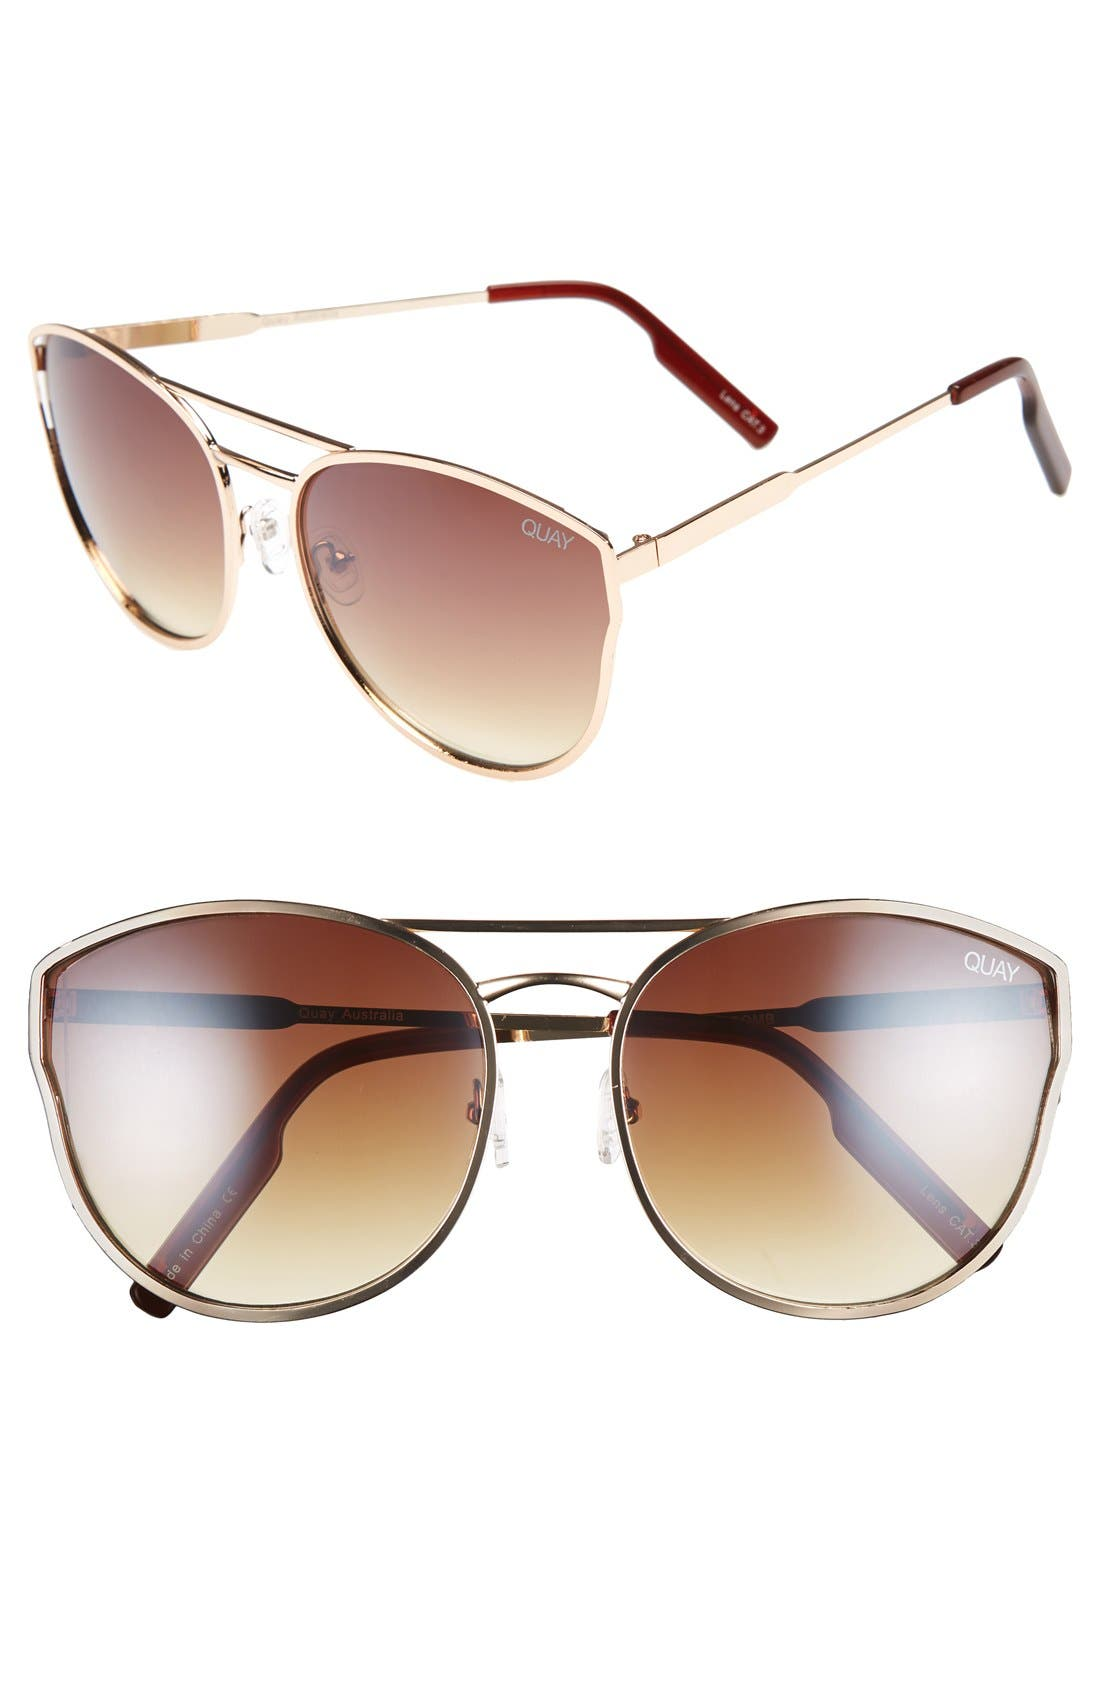 Cherry Bomb 60mm Sunglasses,                         Main,                         color, Gold/ Silver Mirror